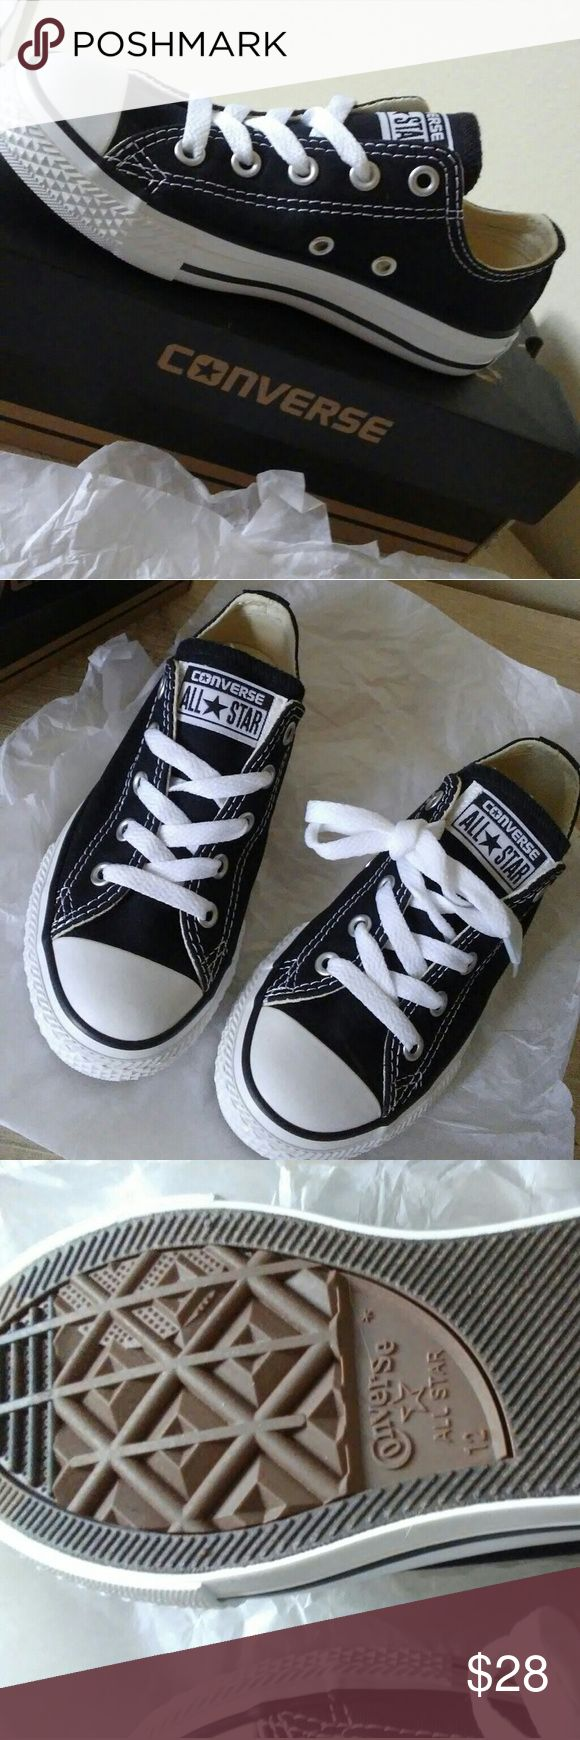 New kids Converse (Sz12) New size 12 for kids. Colors black and white new never used. New in box. Converse Shoes Sneakers